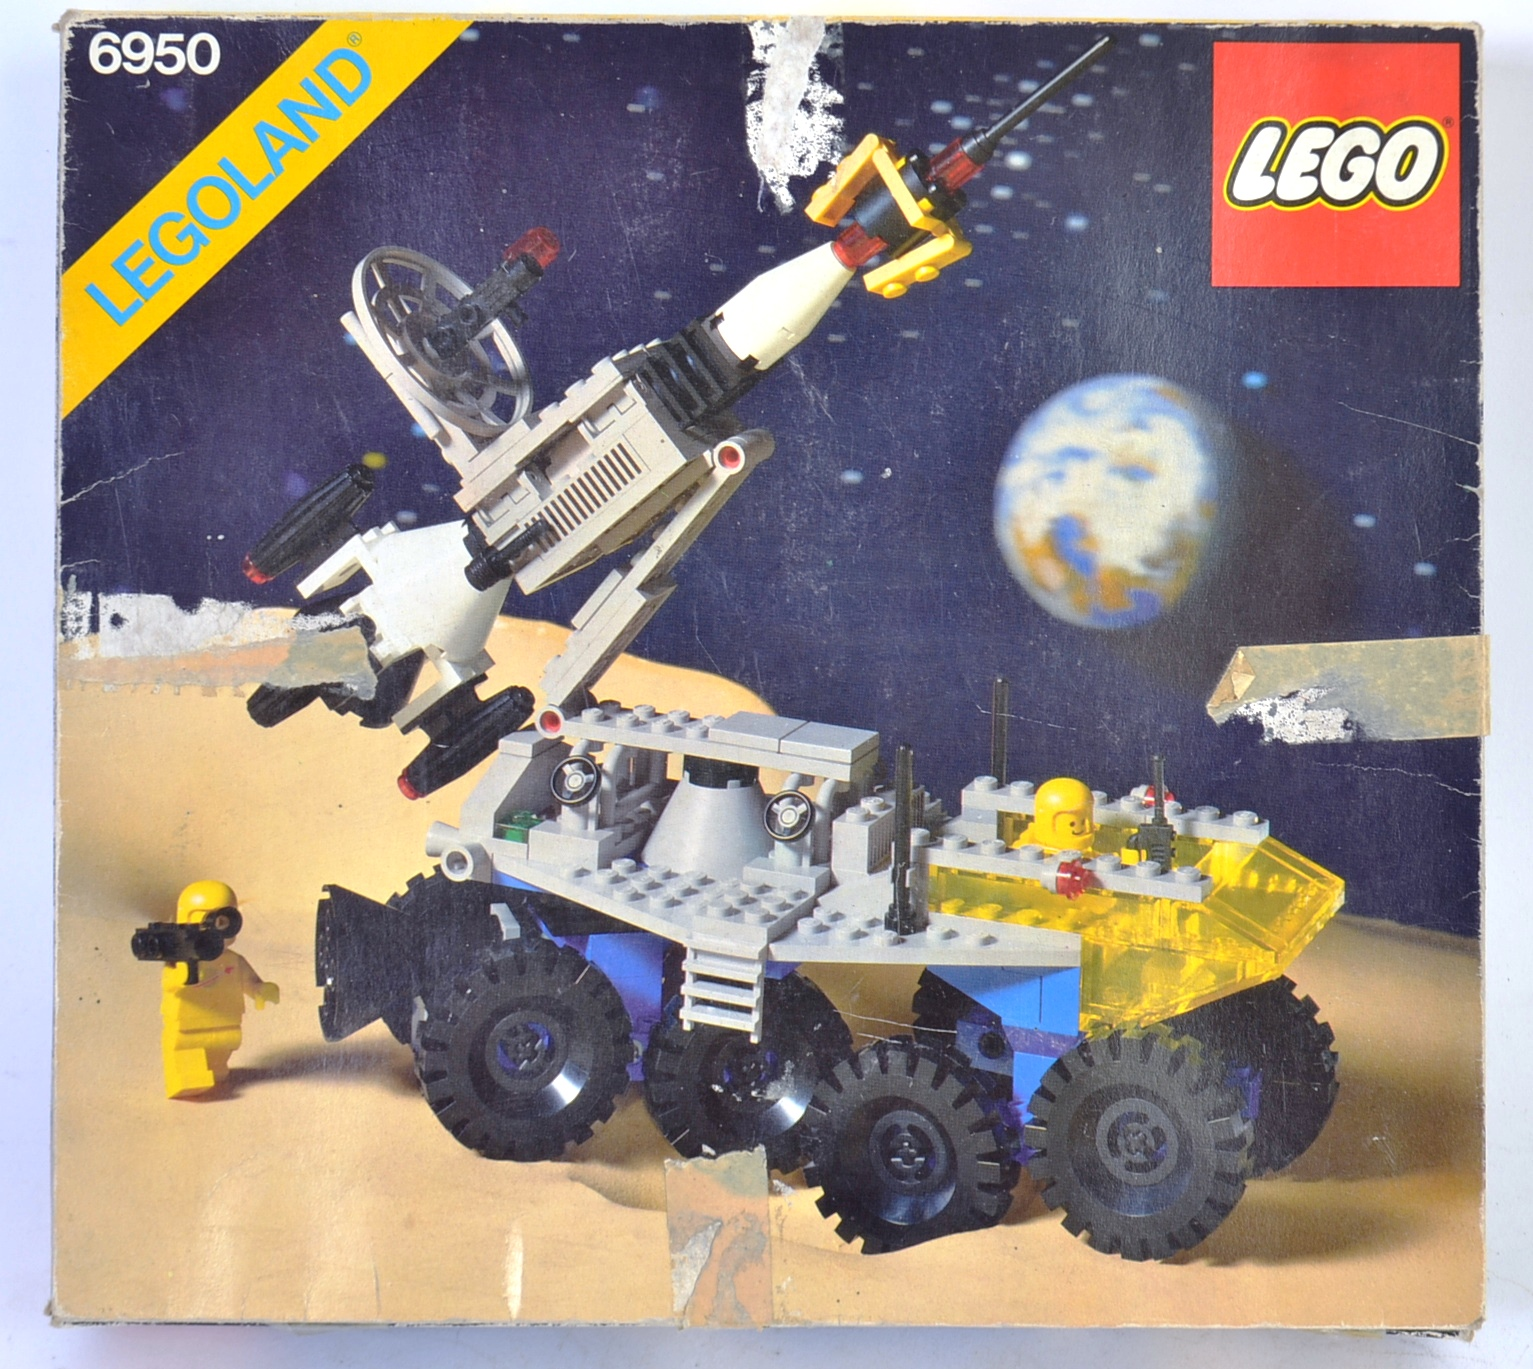 Lego Space is a Lego theme that features astronauts, spaceships, and extraterrestrial life. Originally introduced in , it is one of the oldest and most expansive themes in Lego history, and contains over individual sets.